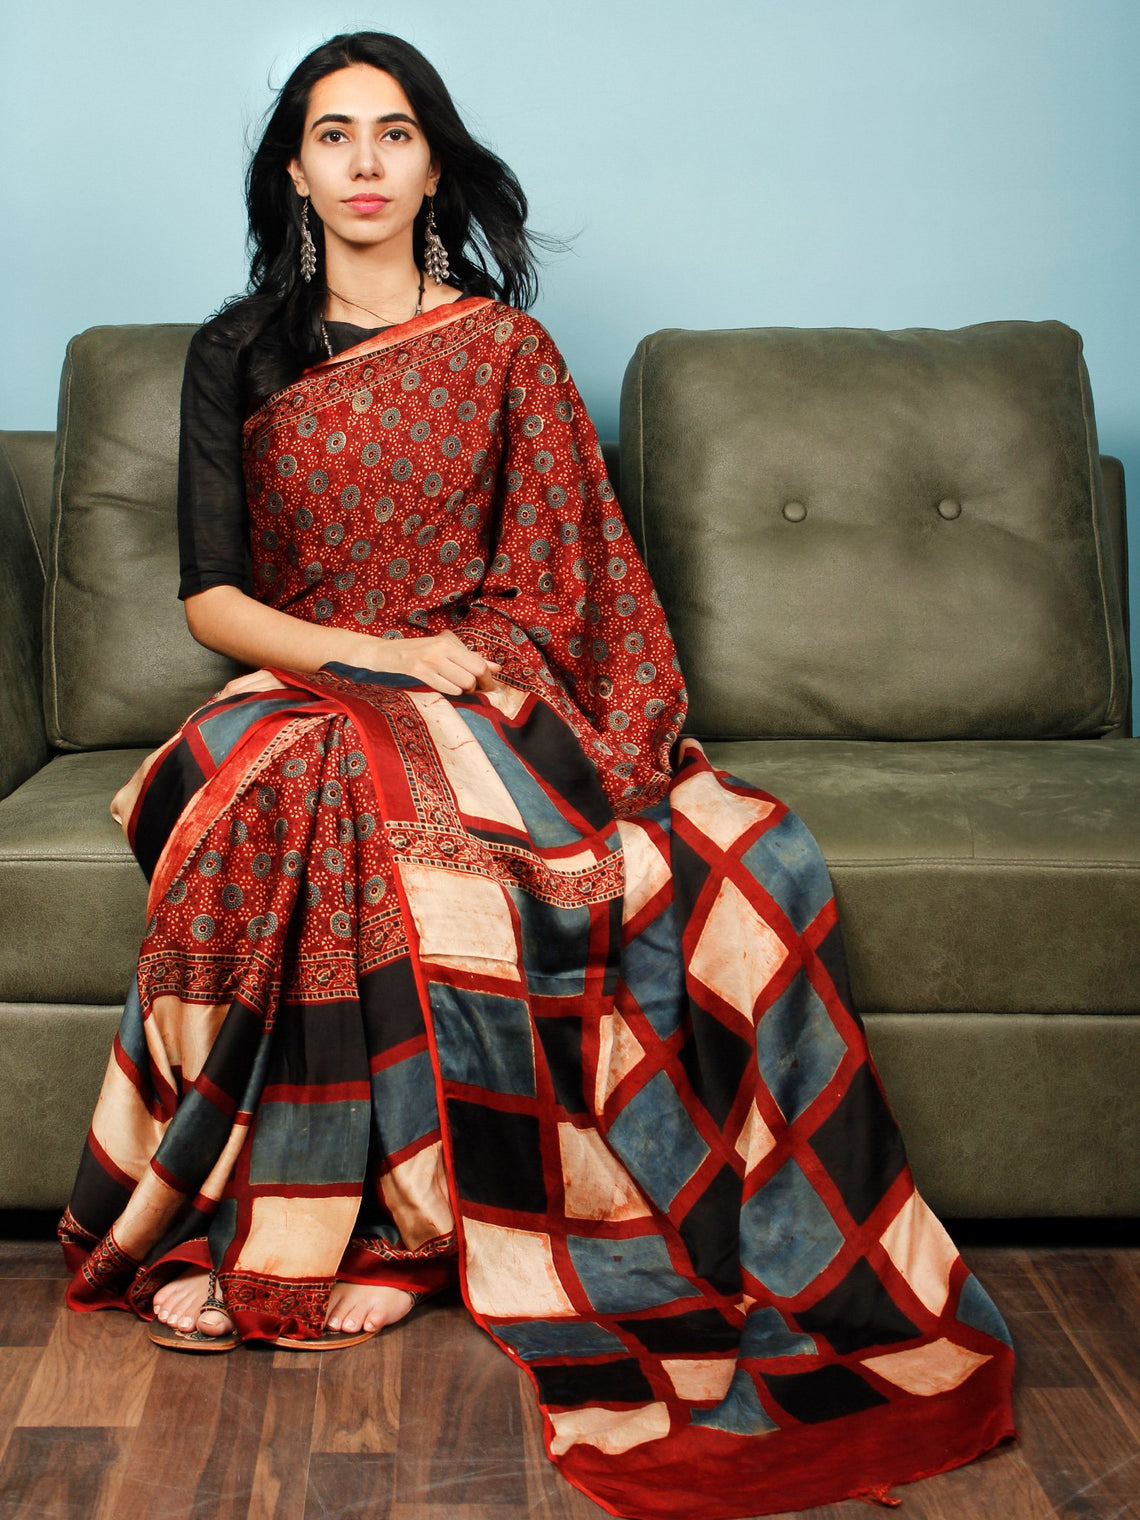 Red Indigo Ivory Black Ajrakh Hand Block Printed Modal Silk Saree in Natural Colors - S031703357